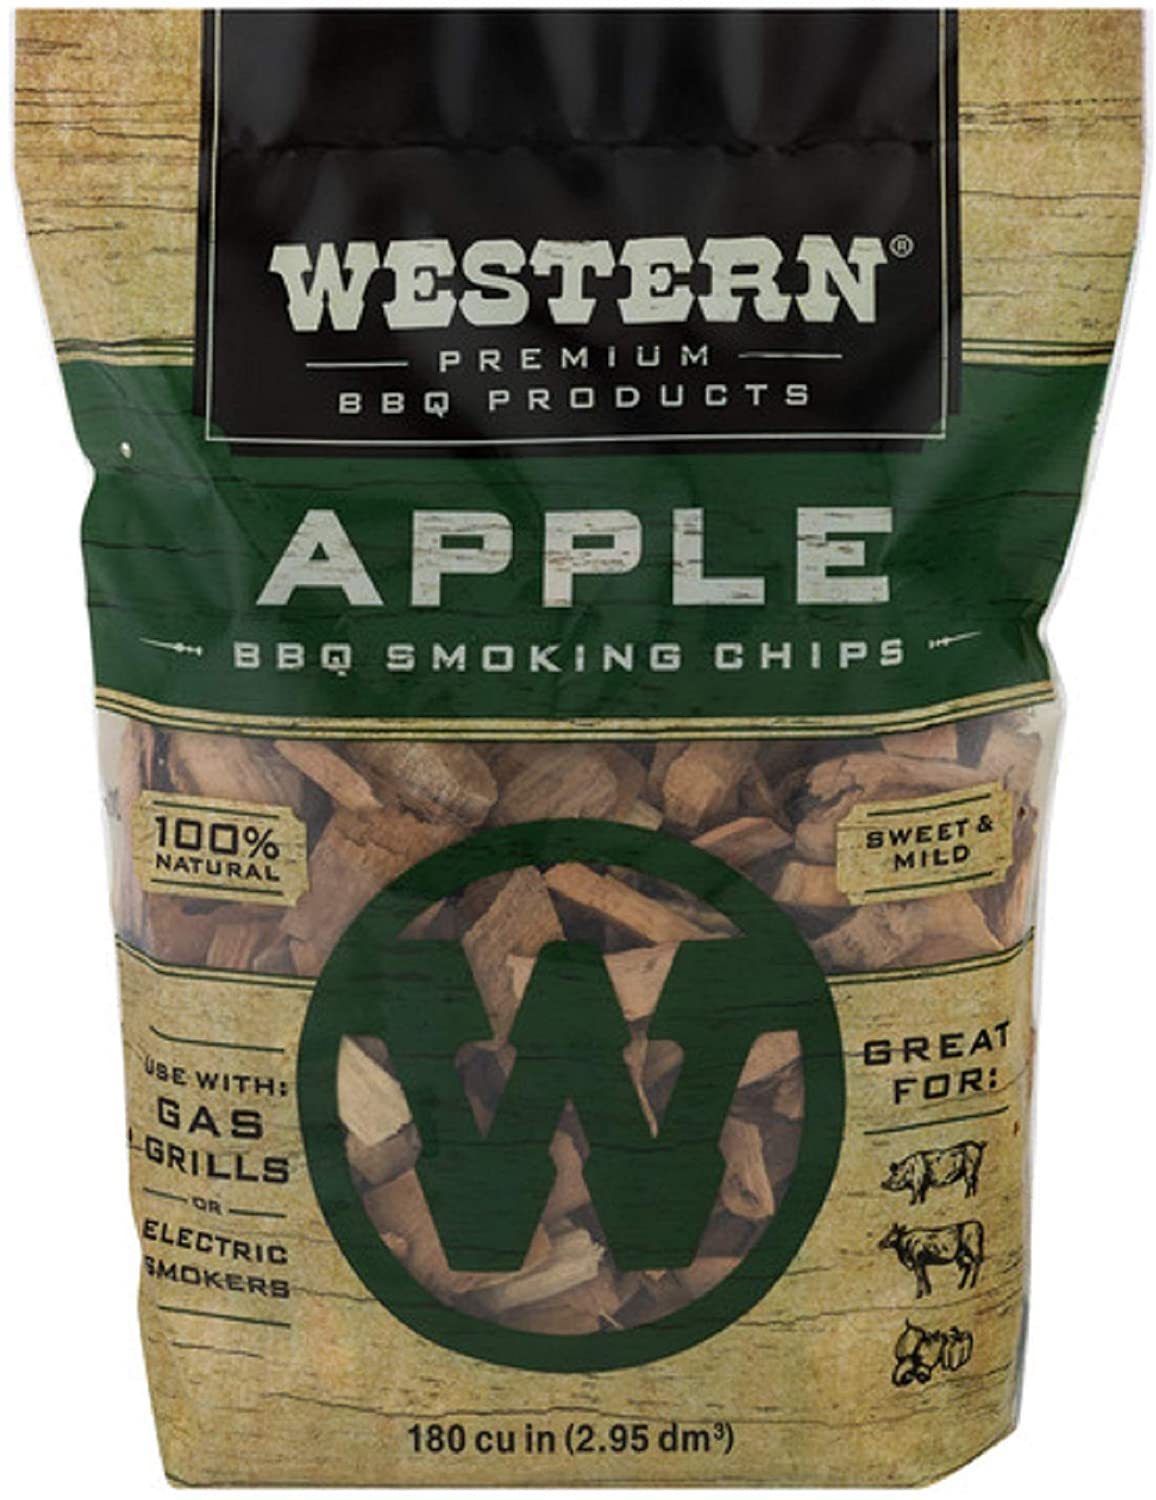 Western Premium BBQ Smoking Chips, Apple BBQ : Smoker Chips : Garden & Outdoor